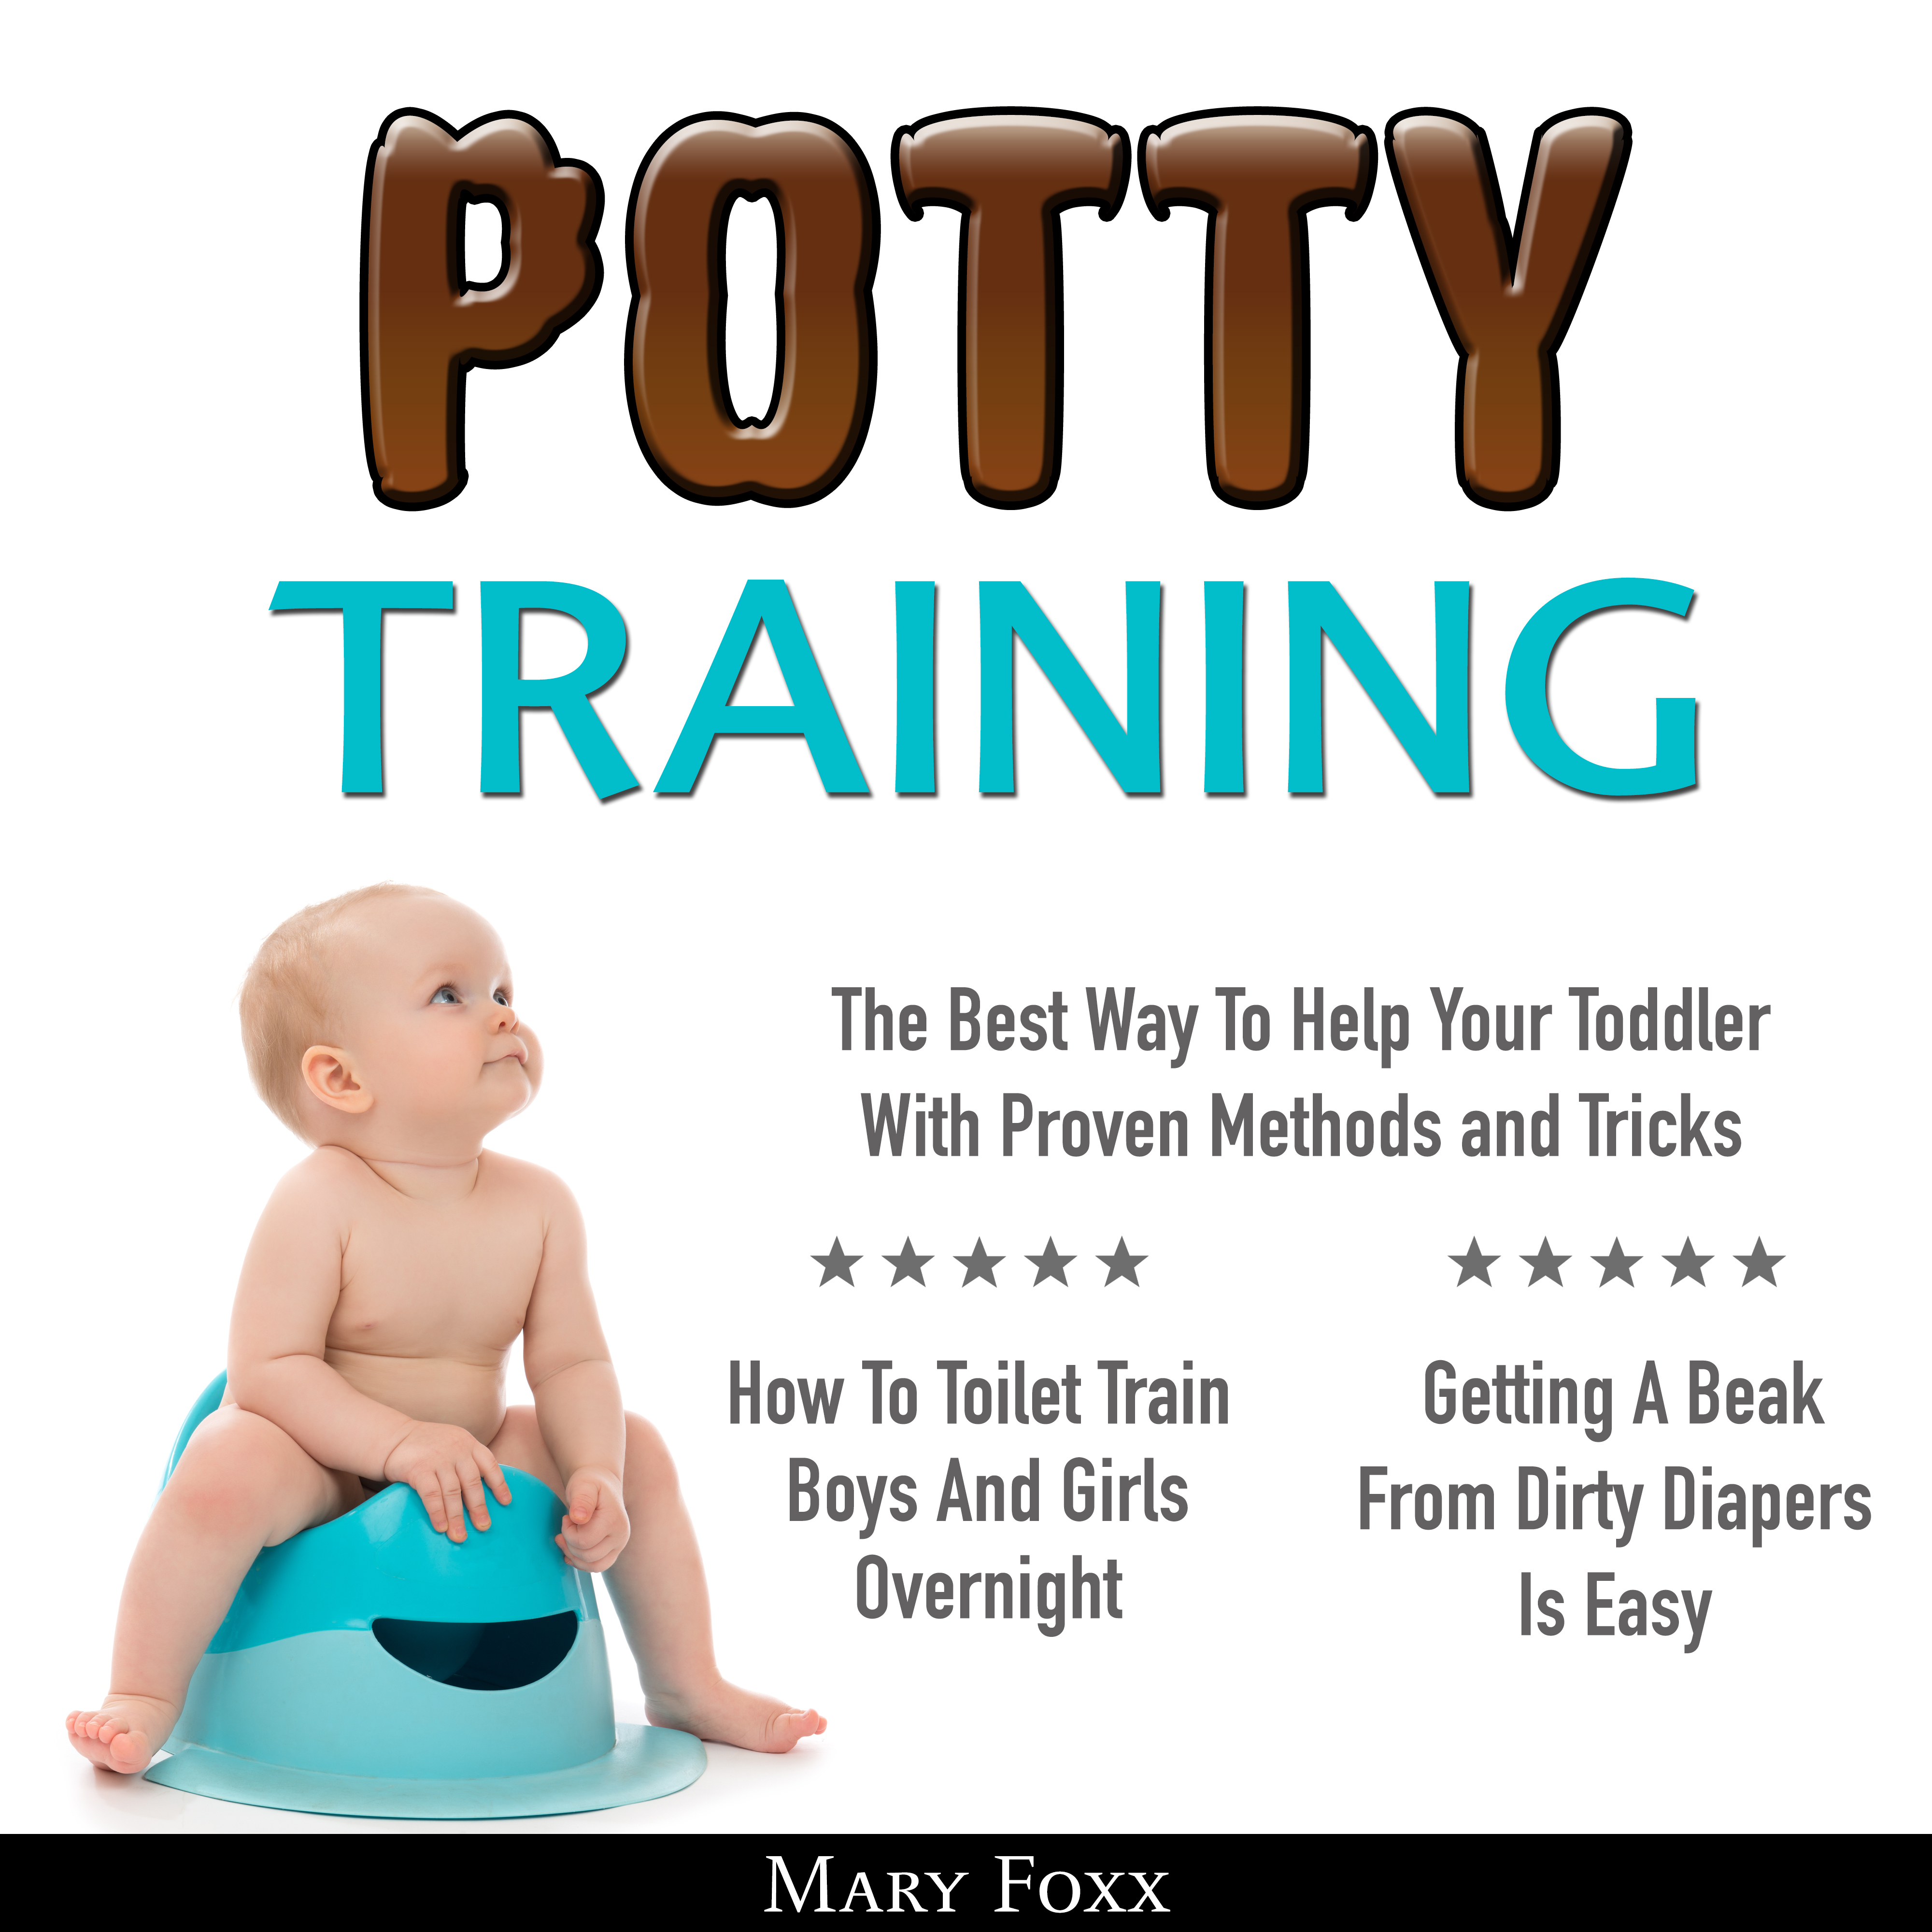 Printable Potty Training: How To Toilet Train Boys And Girls Overnight; The Best Way To Help Your Toddler With Proven Methods and Tricks; Getting A Beak From Dirty Diapers Is Easy Audiobook Cover Art